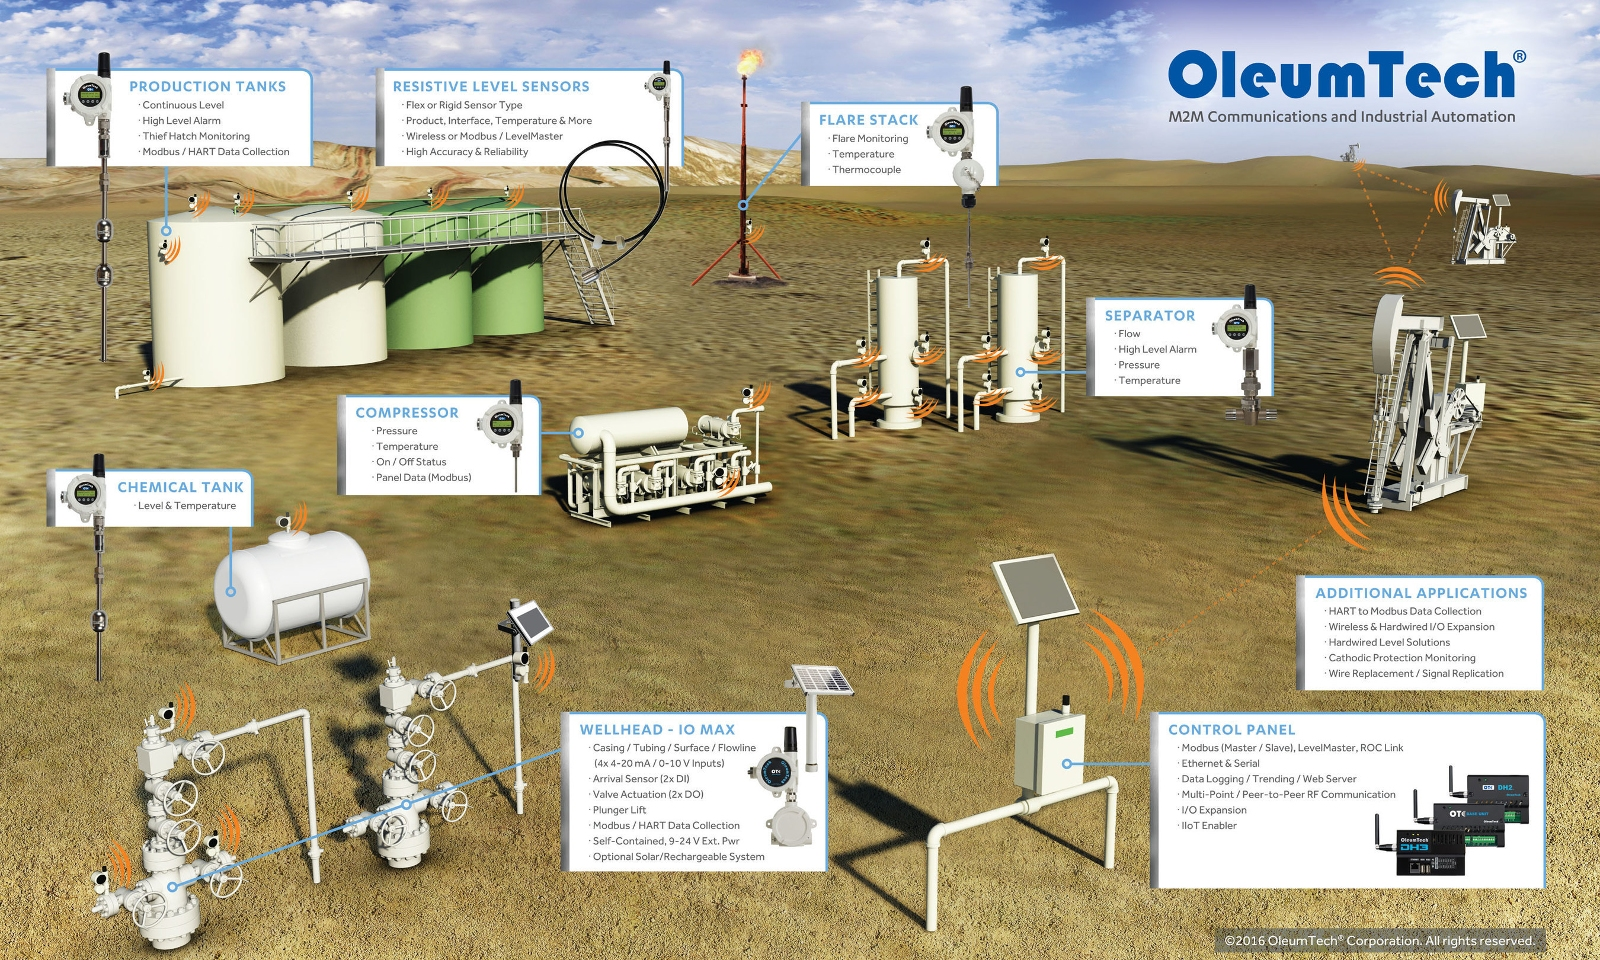 Oleumtech Wireless Sensor Networks Are Enabling Oil Gas Operators Pressure Circuit Diagram To Increase Efficiency And Reliability While Cutting Costs The Ogm